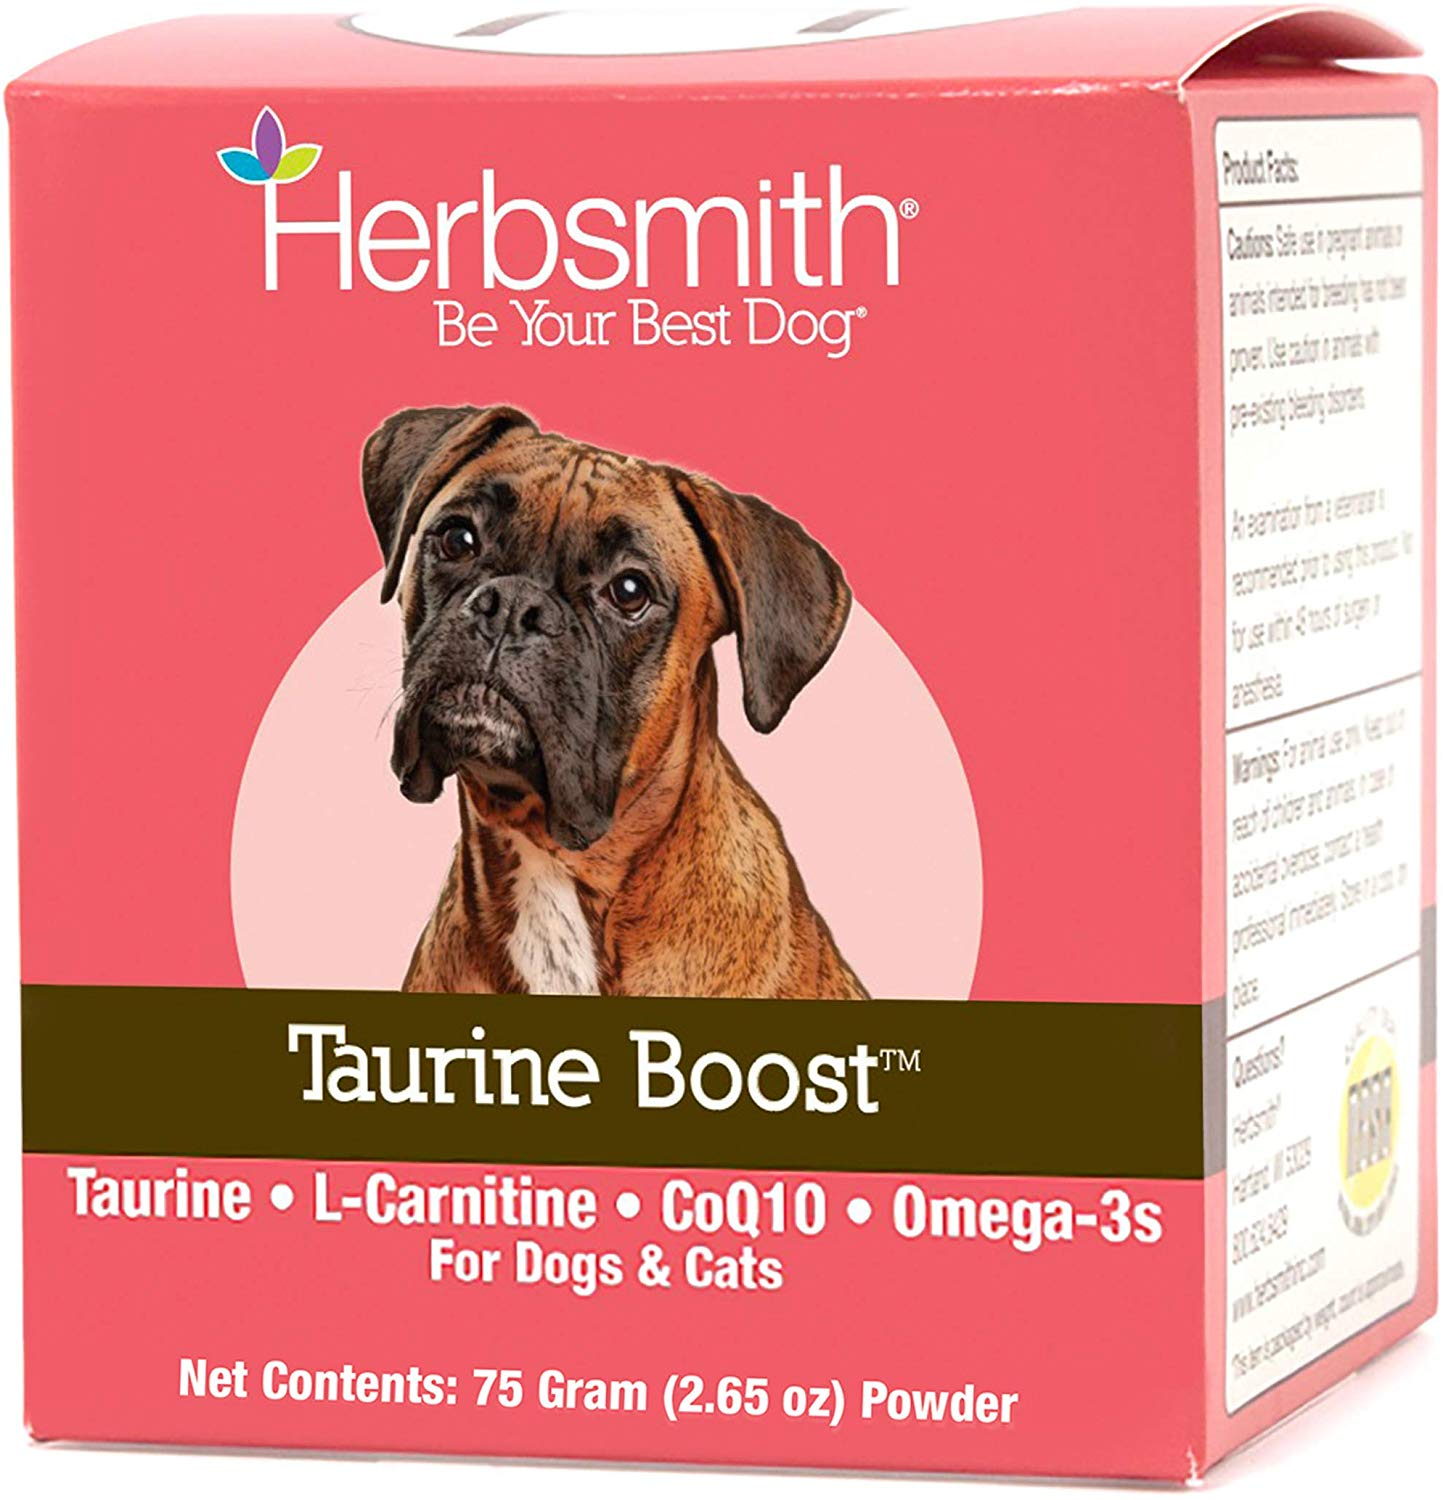 Herbsmith Taurine Boost Cat Supplement Powder, 150g